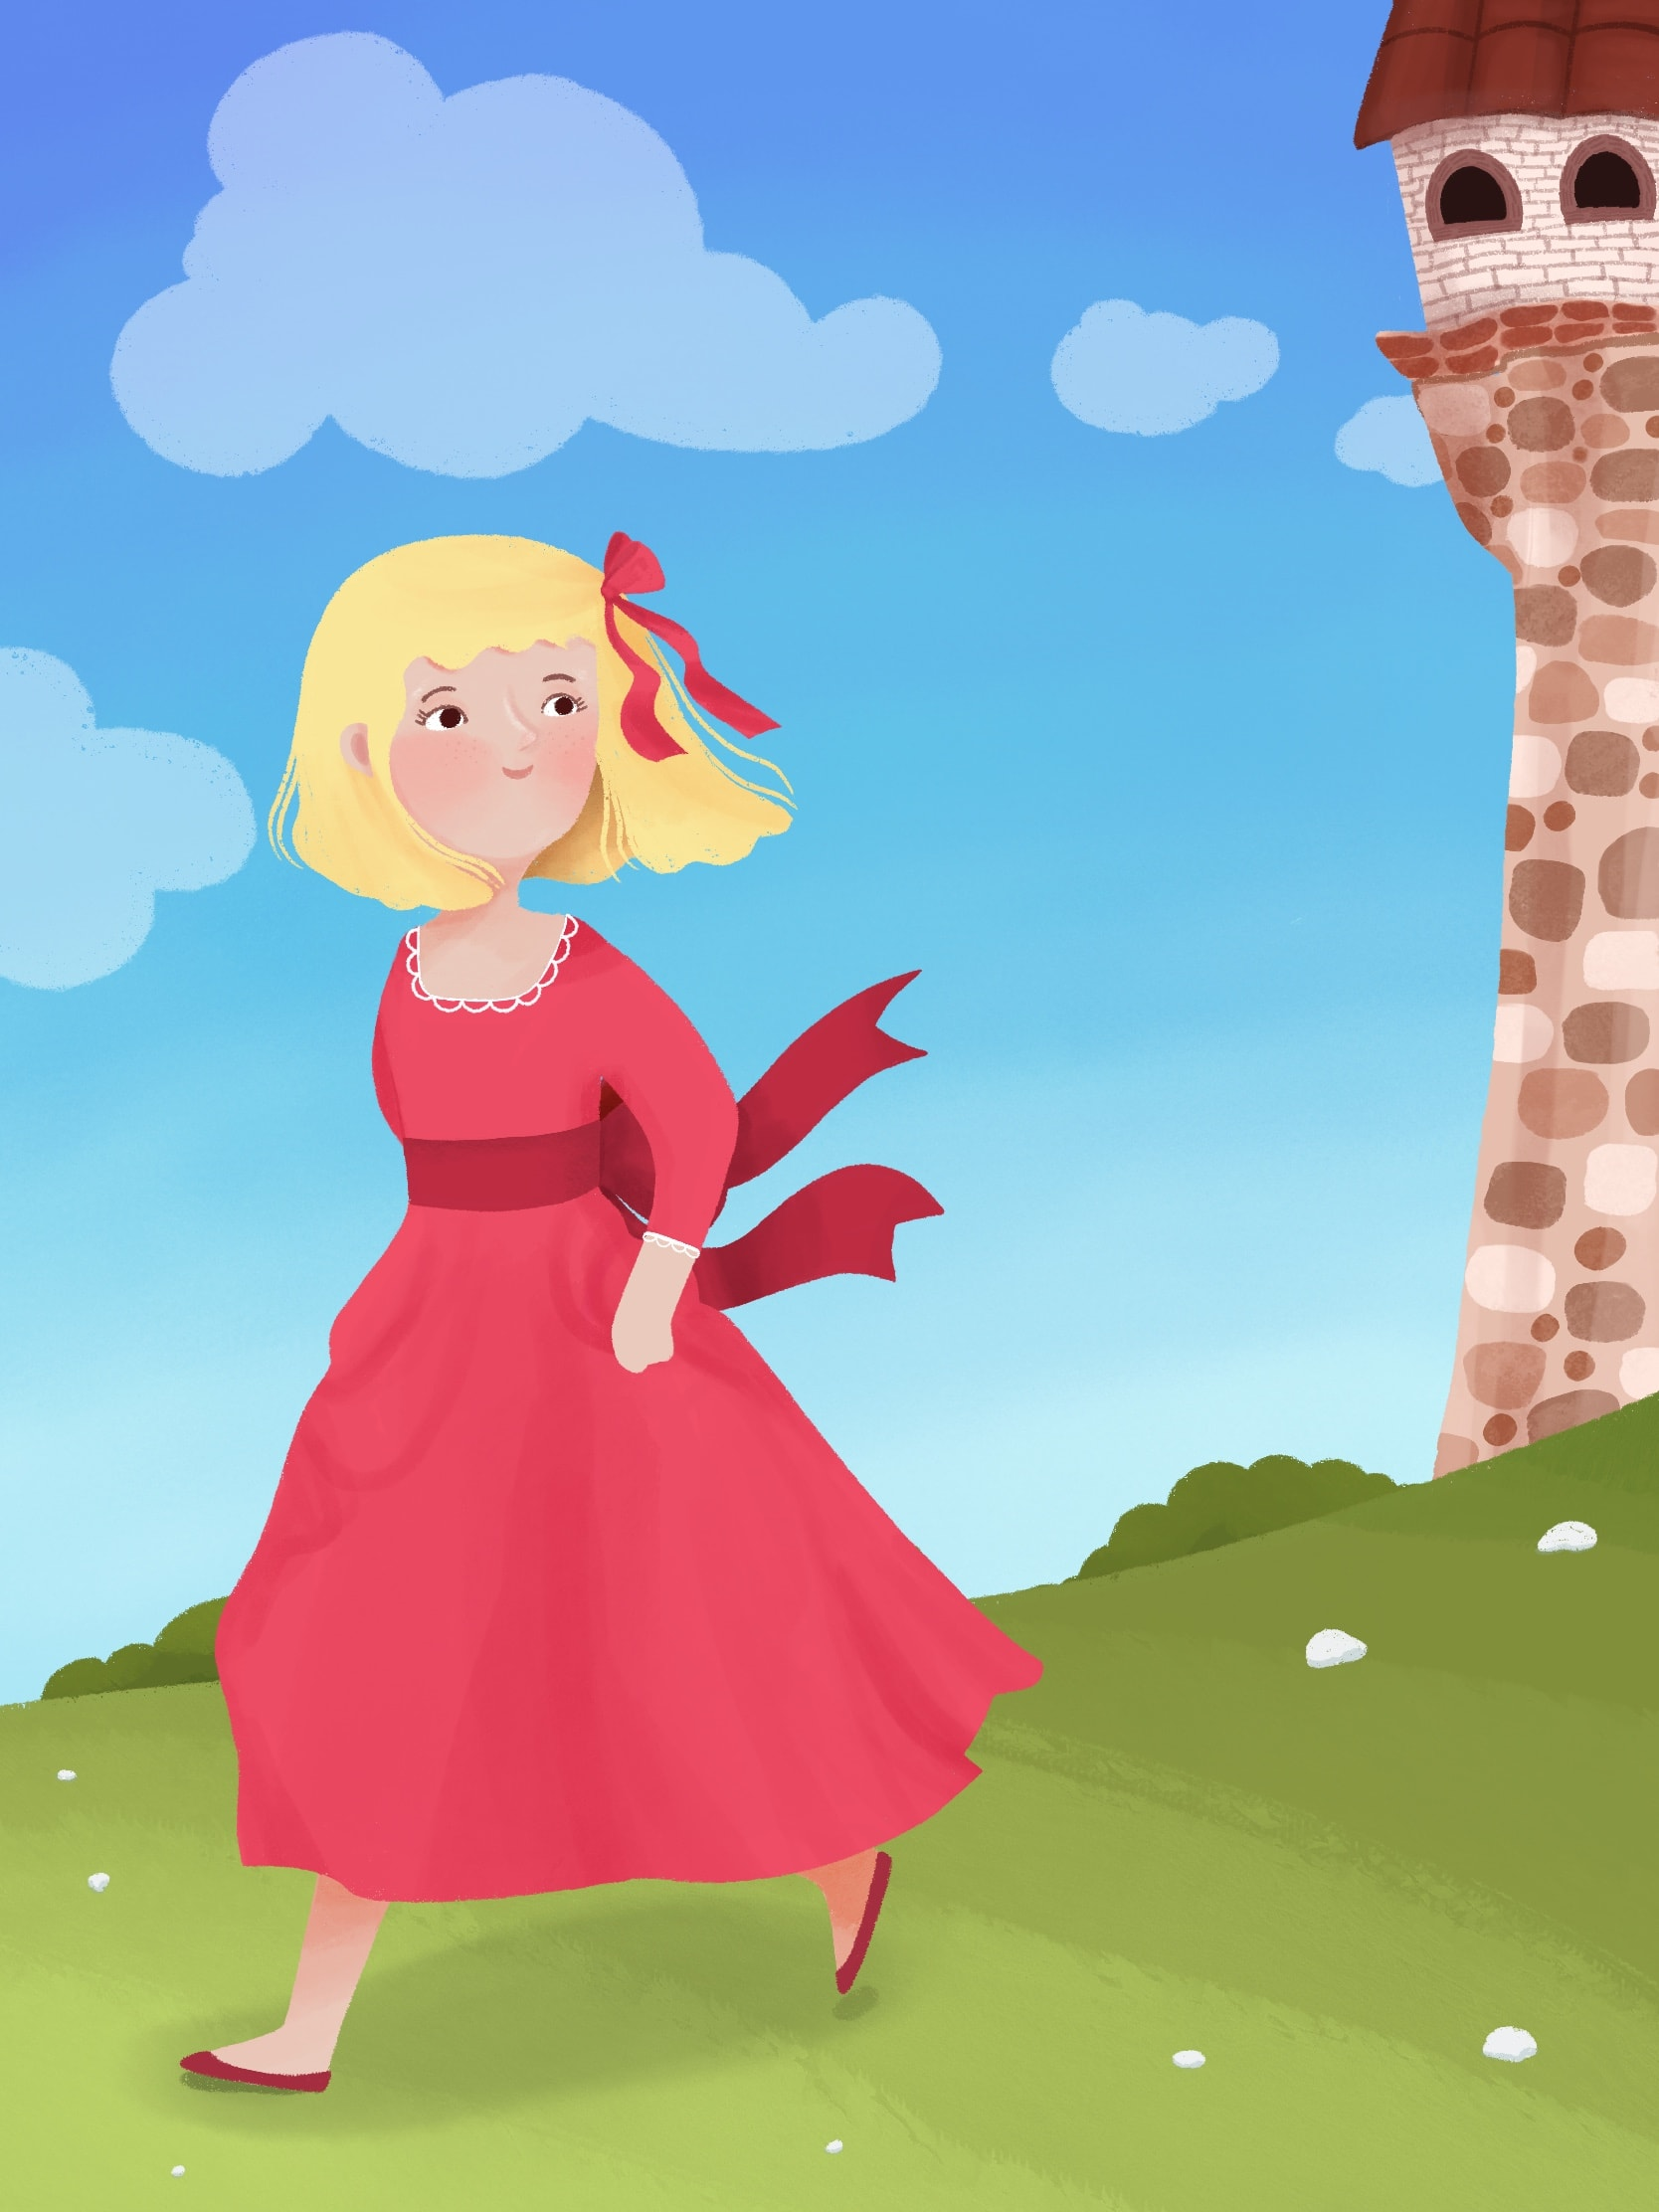 I will make cute or educational children book illustration with my style